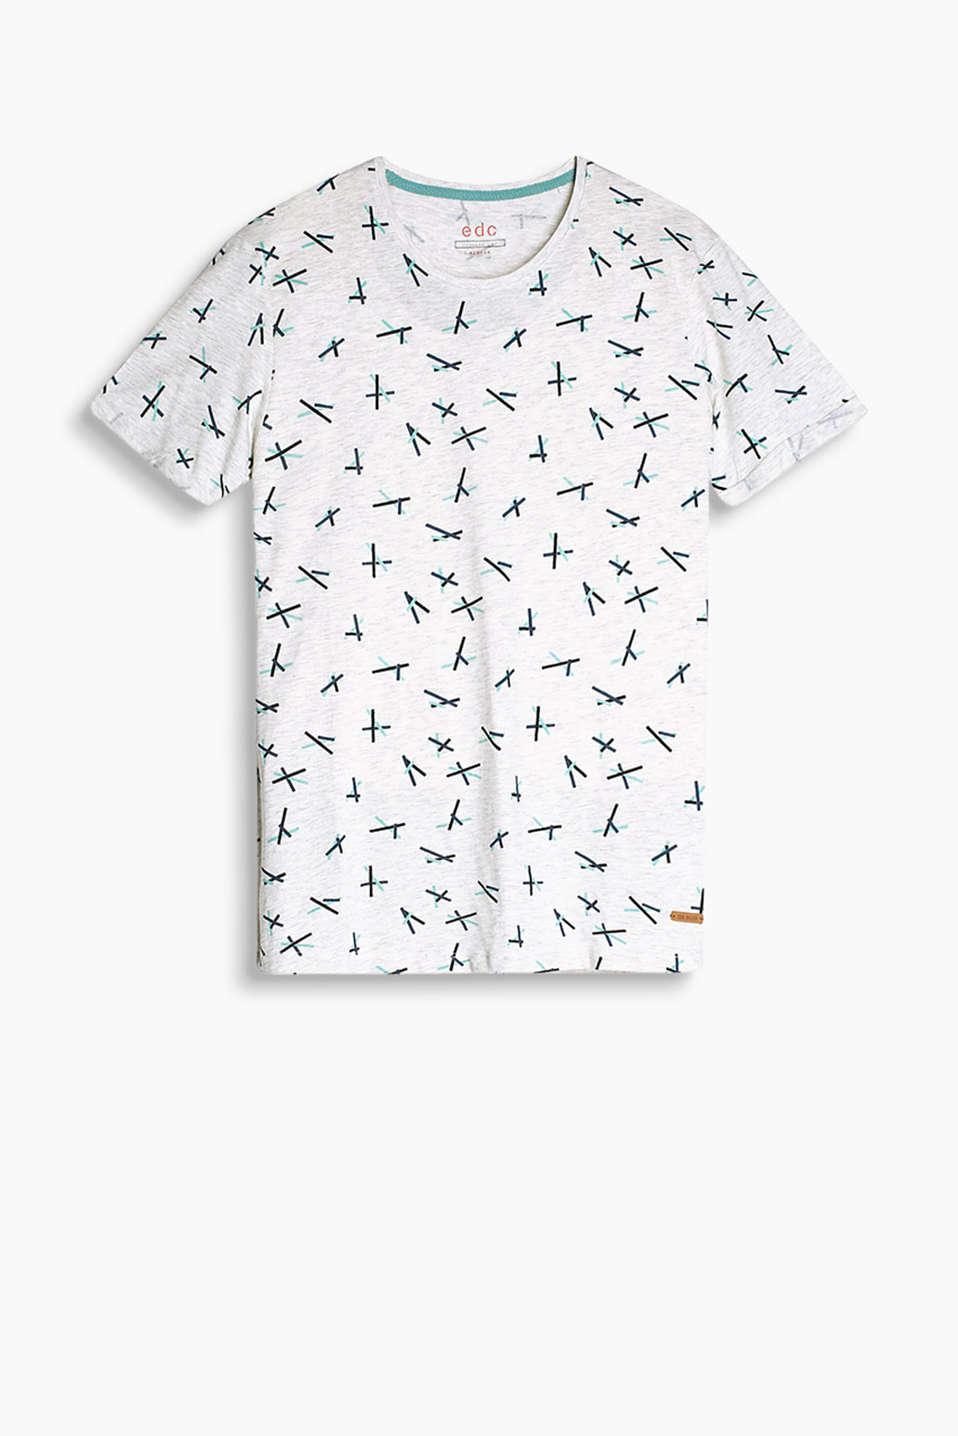 T-shirt in a soft cotton-rich fabric blend with an all-over geometric print